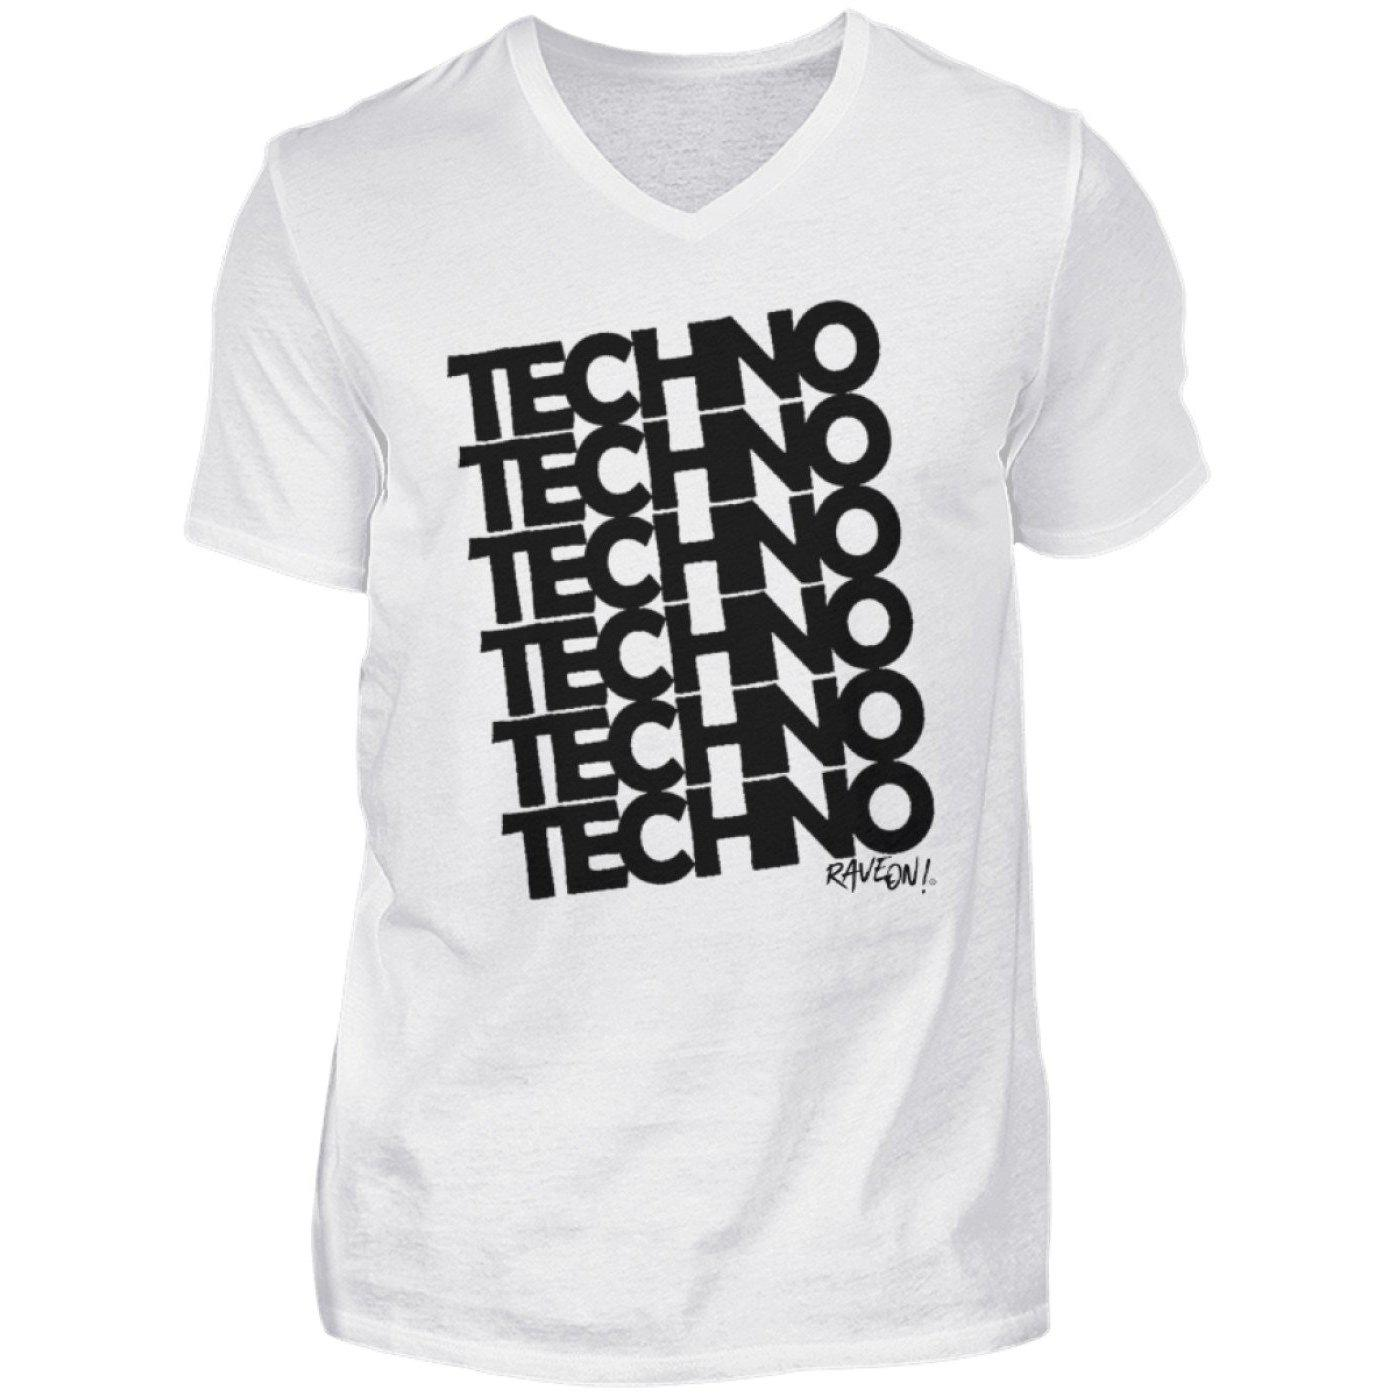 TECHNO 6 Rave On!® T-Shirt - Herren V-Neck Shirt V-Neck Herrenshirt White / S - Rave On!® der Club & Techno Szene Shop für Coole Junge Mode Streetwear Style & Fashion Outfits + Sexy Festival 420 Stuff